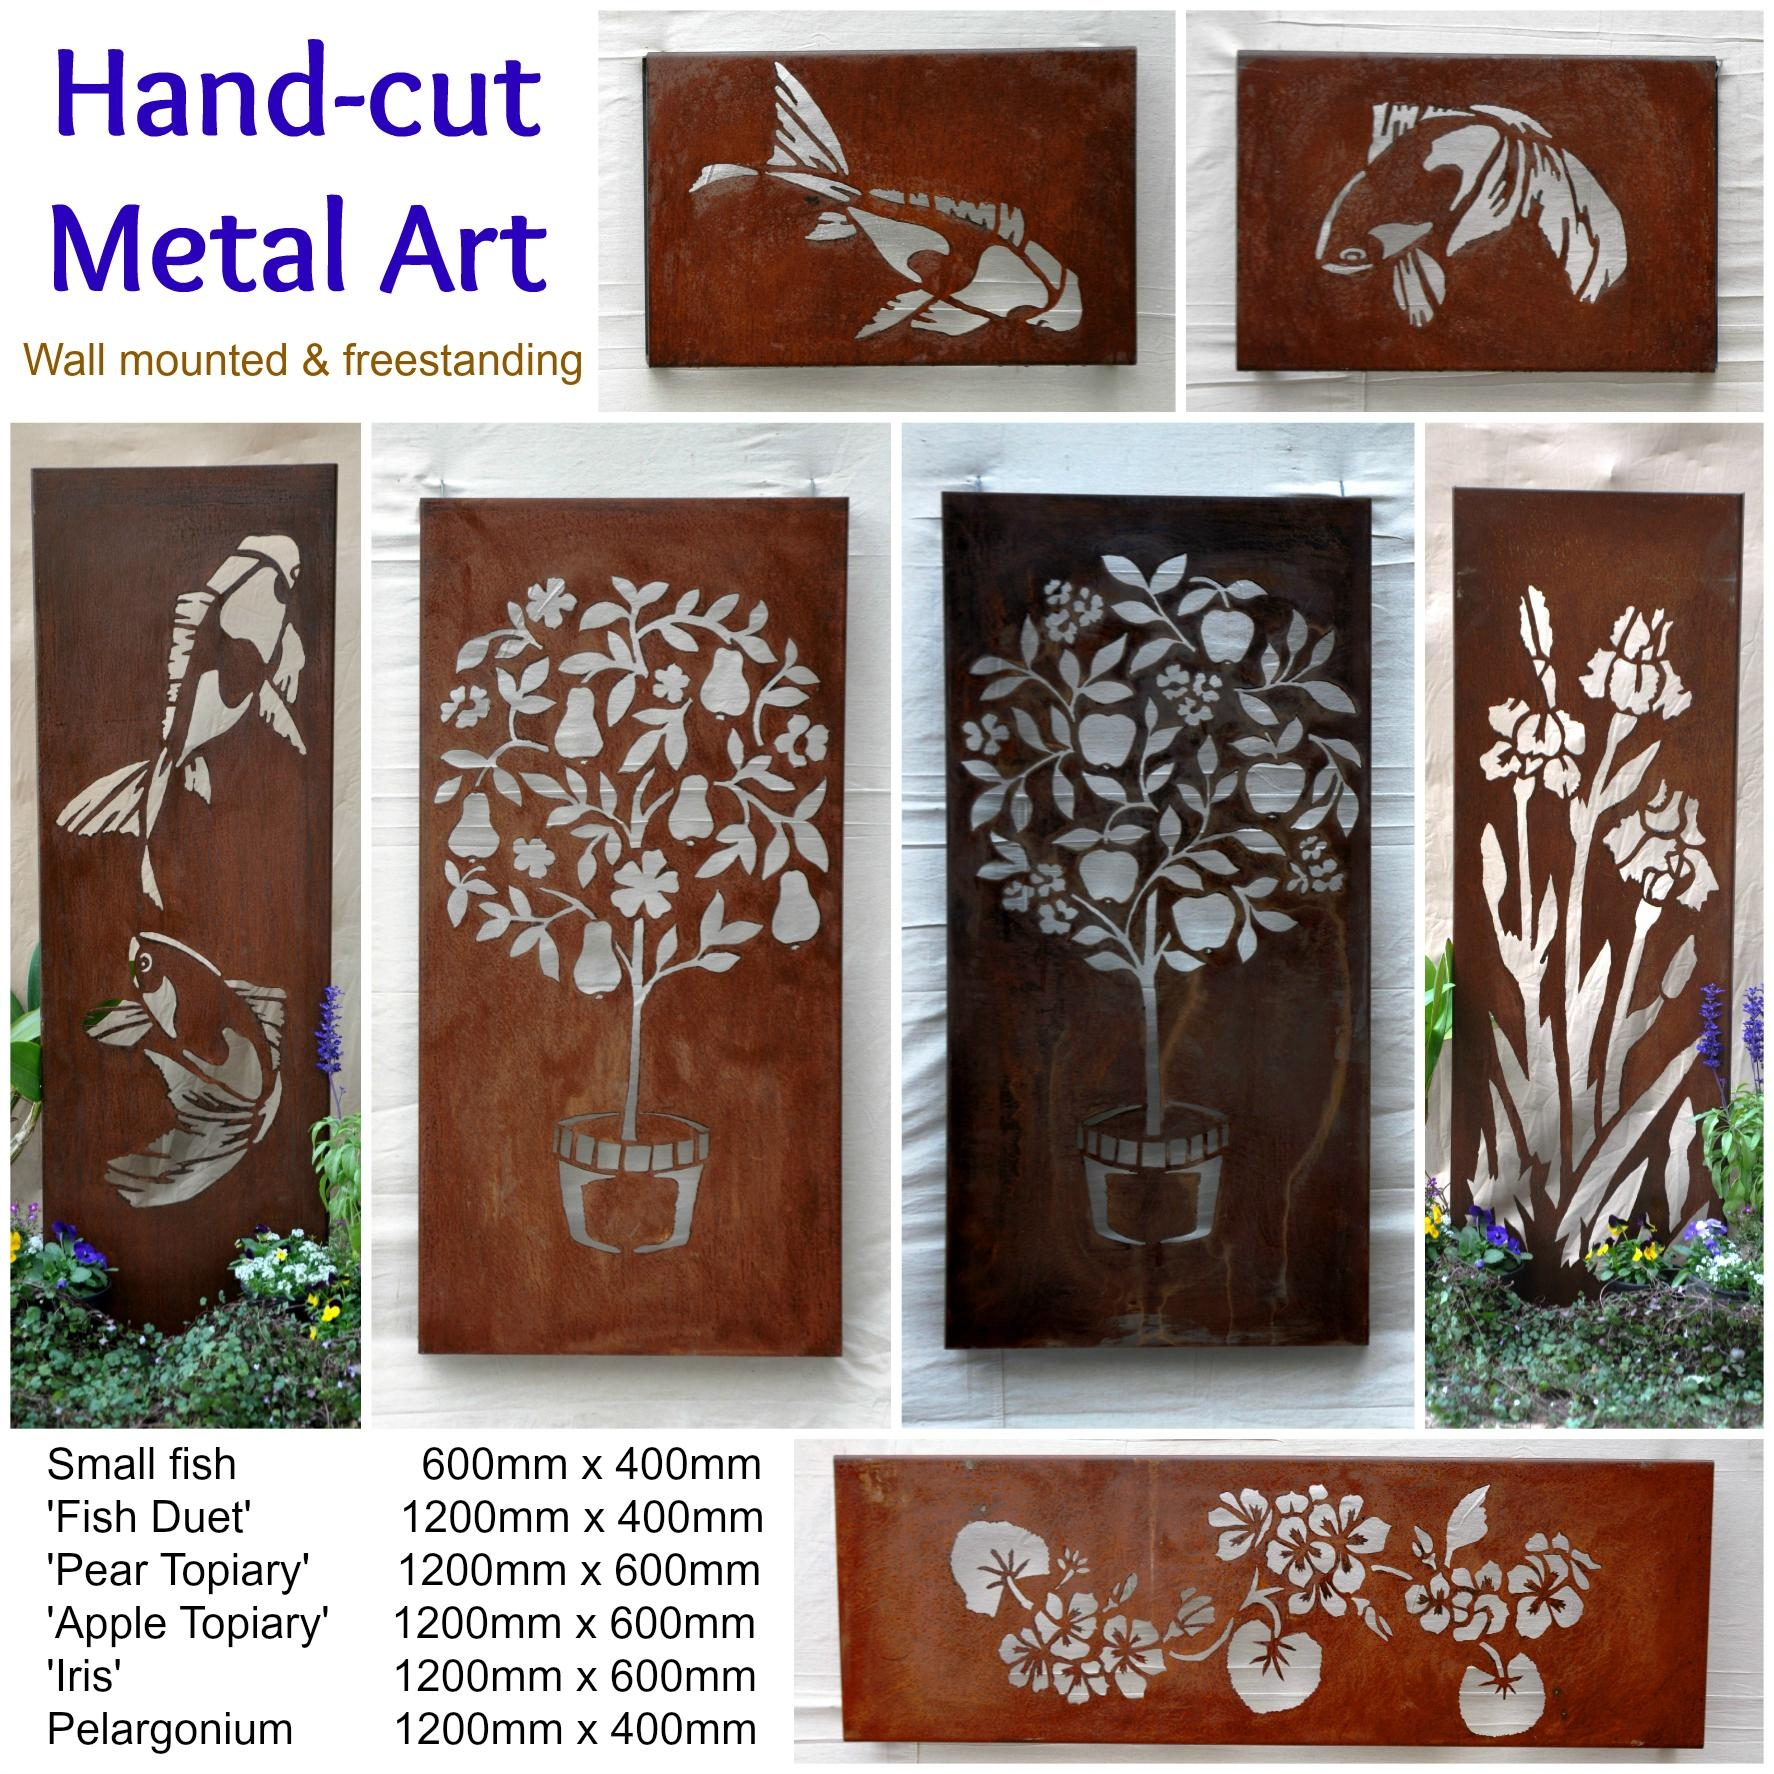 Australian Metal Artwork, Garden Art, Metal Wall Art | Farmweld With Regard To Metal Wall Art For Outdoors (View 19 of 20)